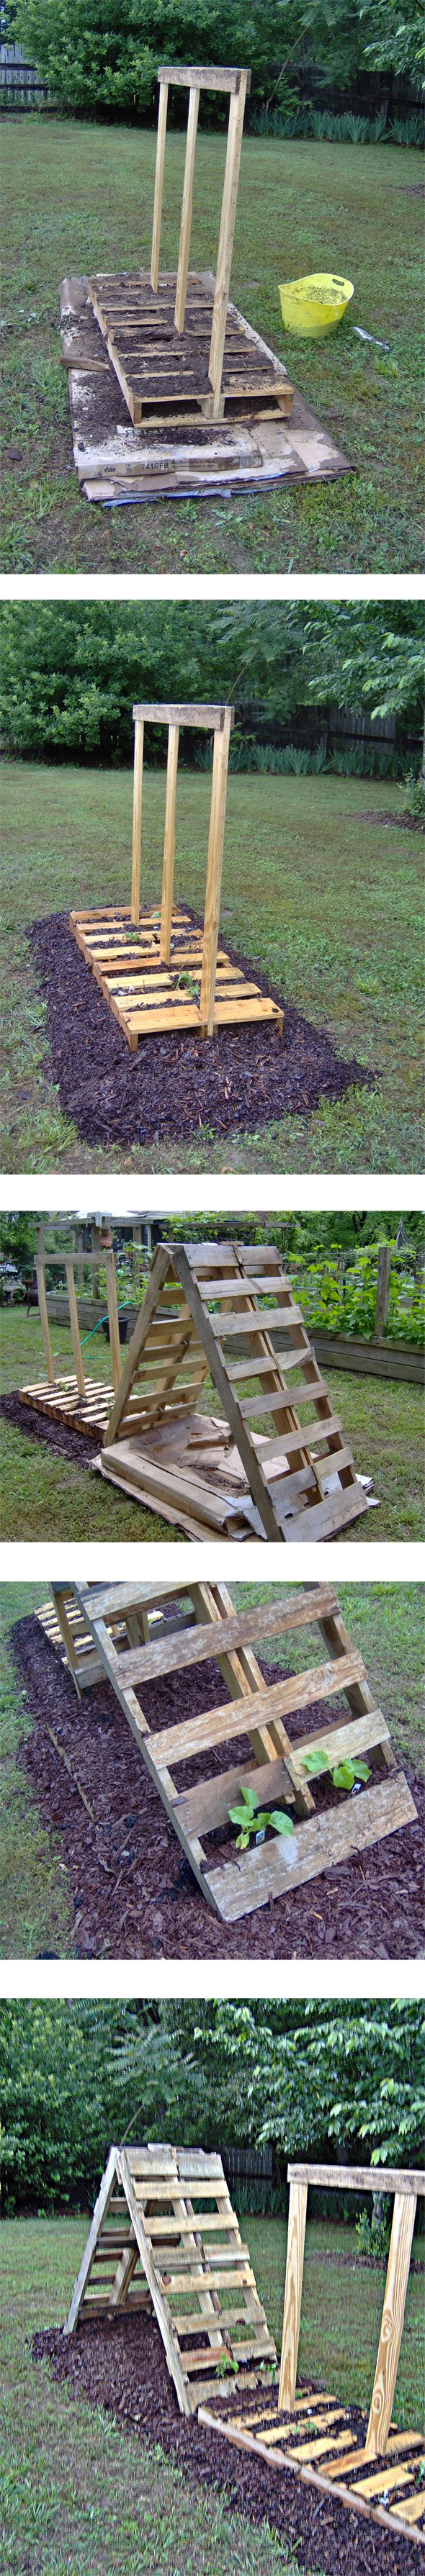 1000+ images about Trellis on Pinterest | Gardens, Old ...